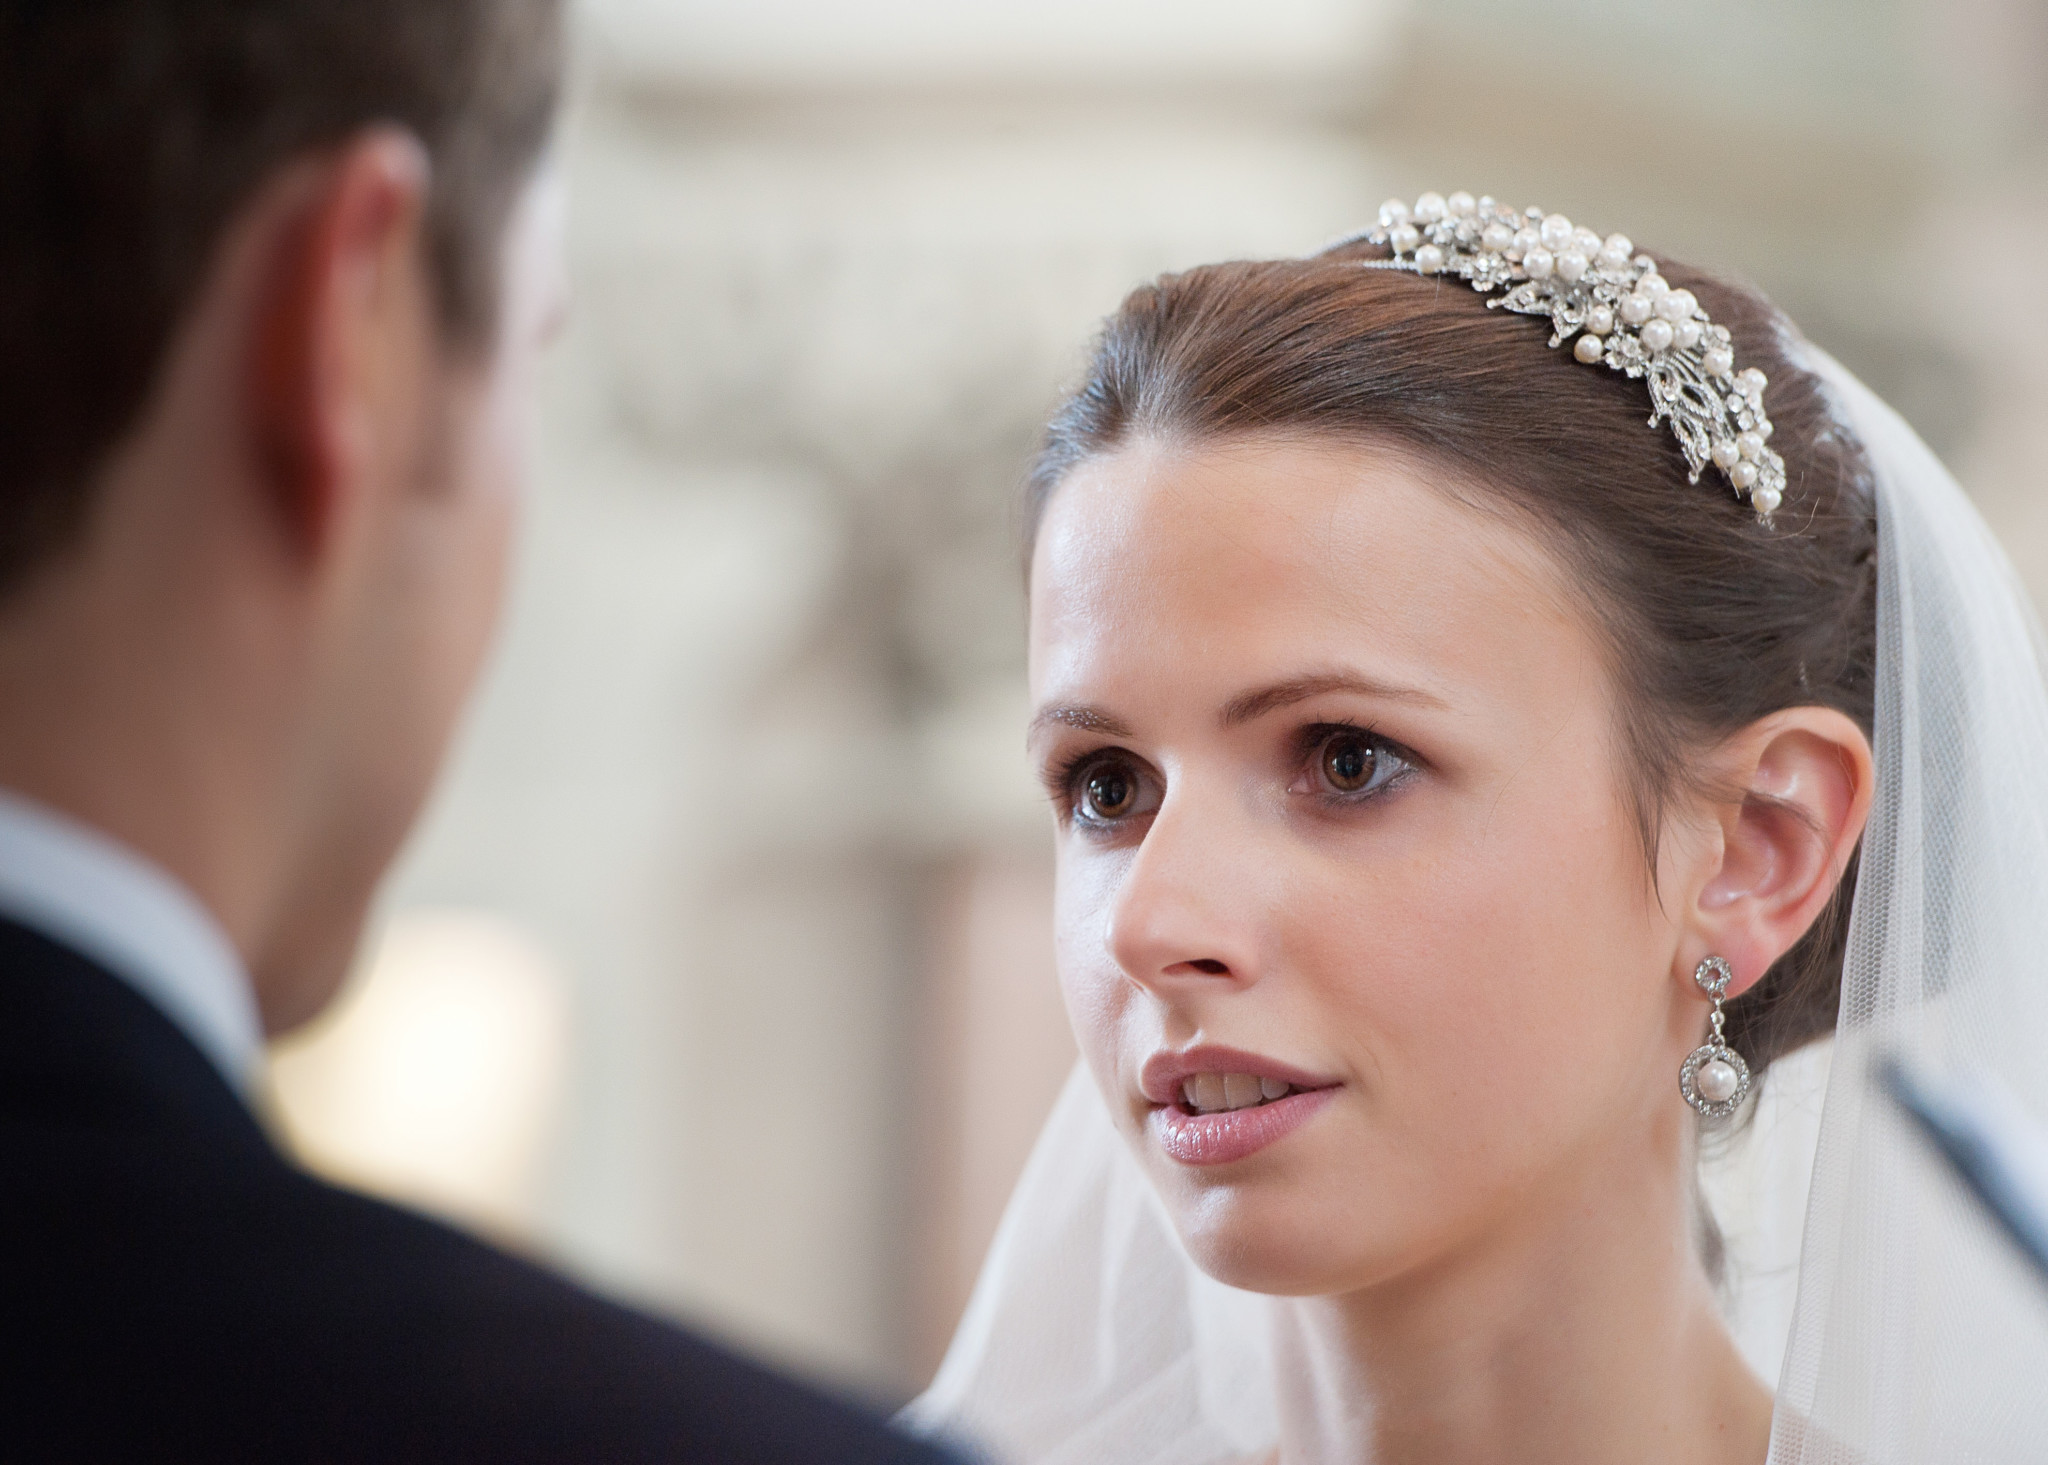 Wedding photograph - close up of the bride